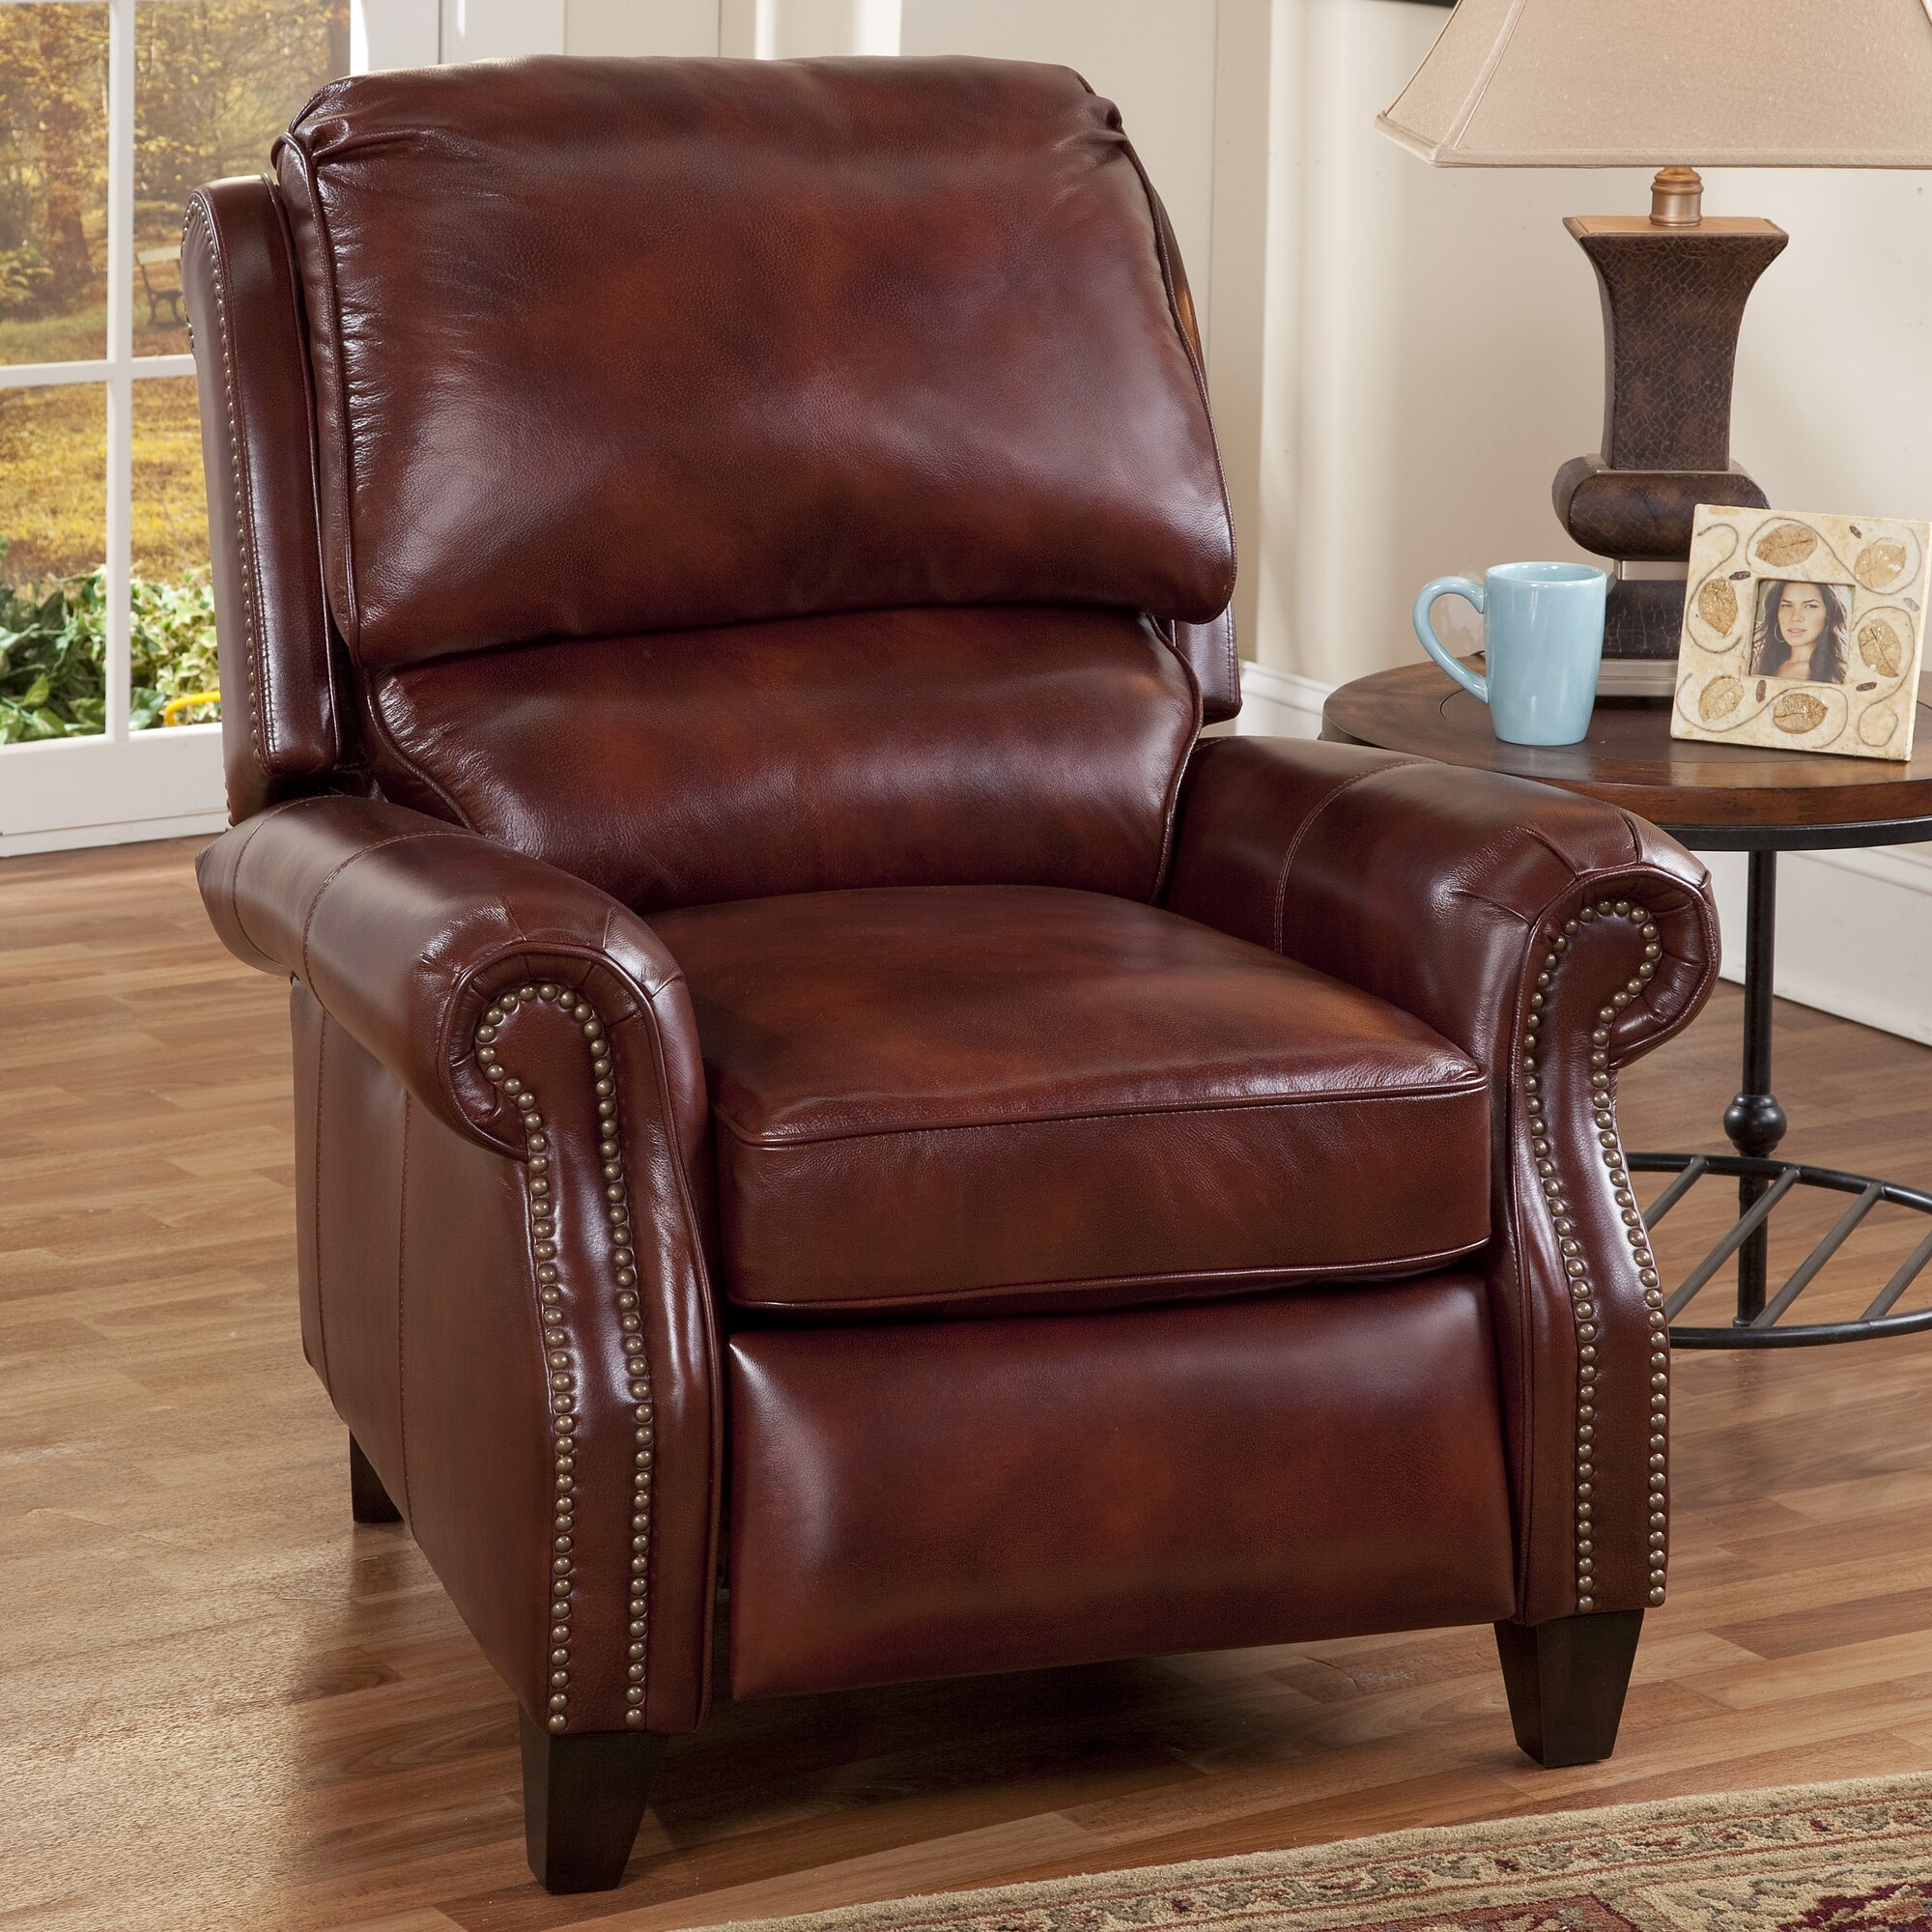 Barcalounger Churchill II Recliner & Reviews | Wayfair